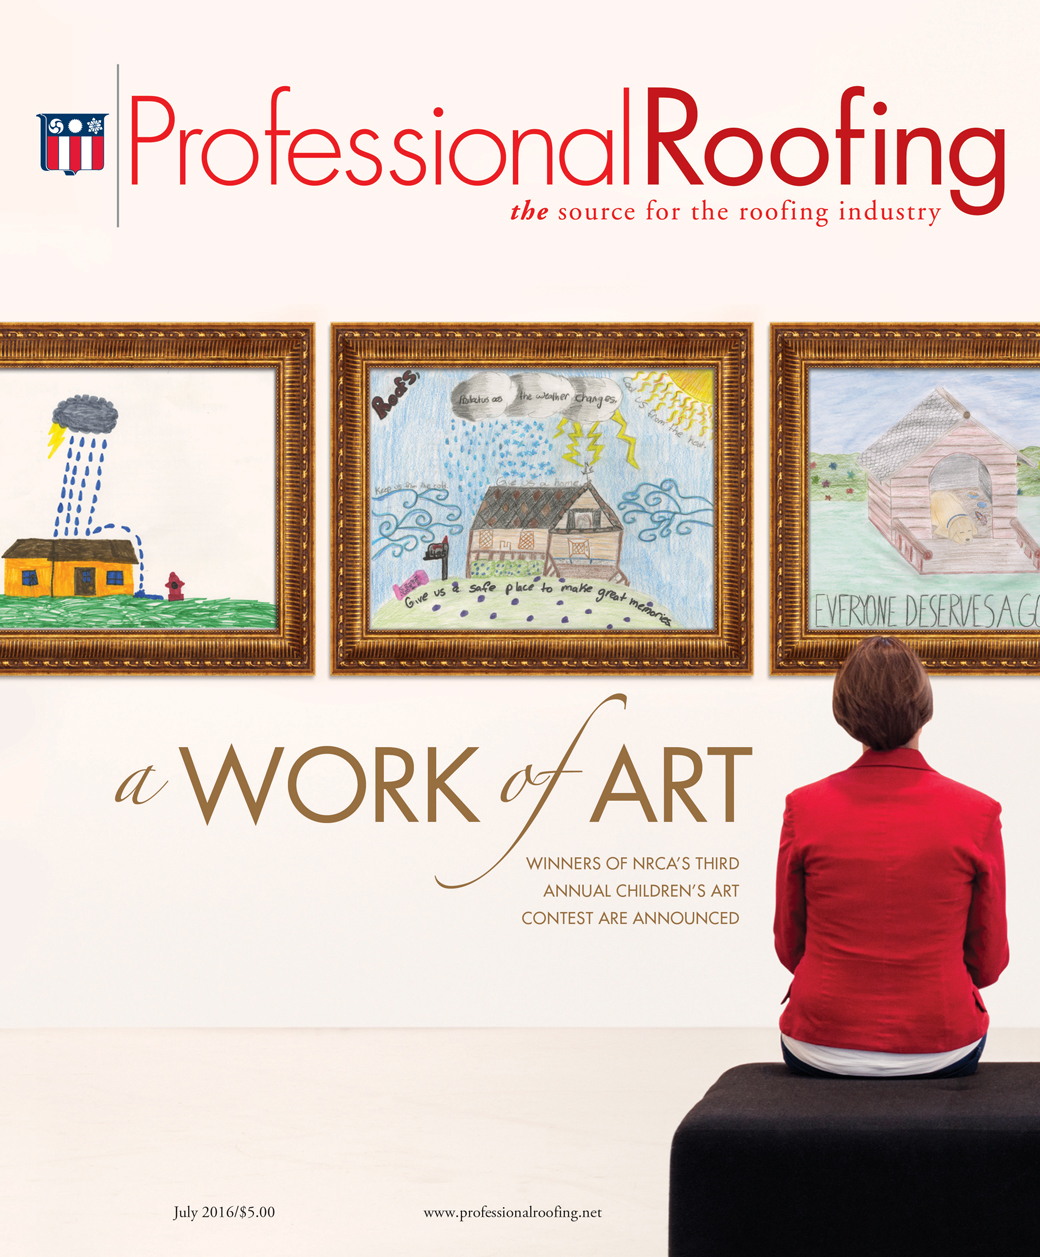 Professional Roofing Magazine 7/1/2016